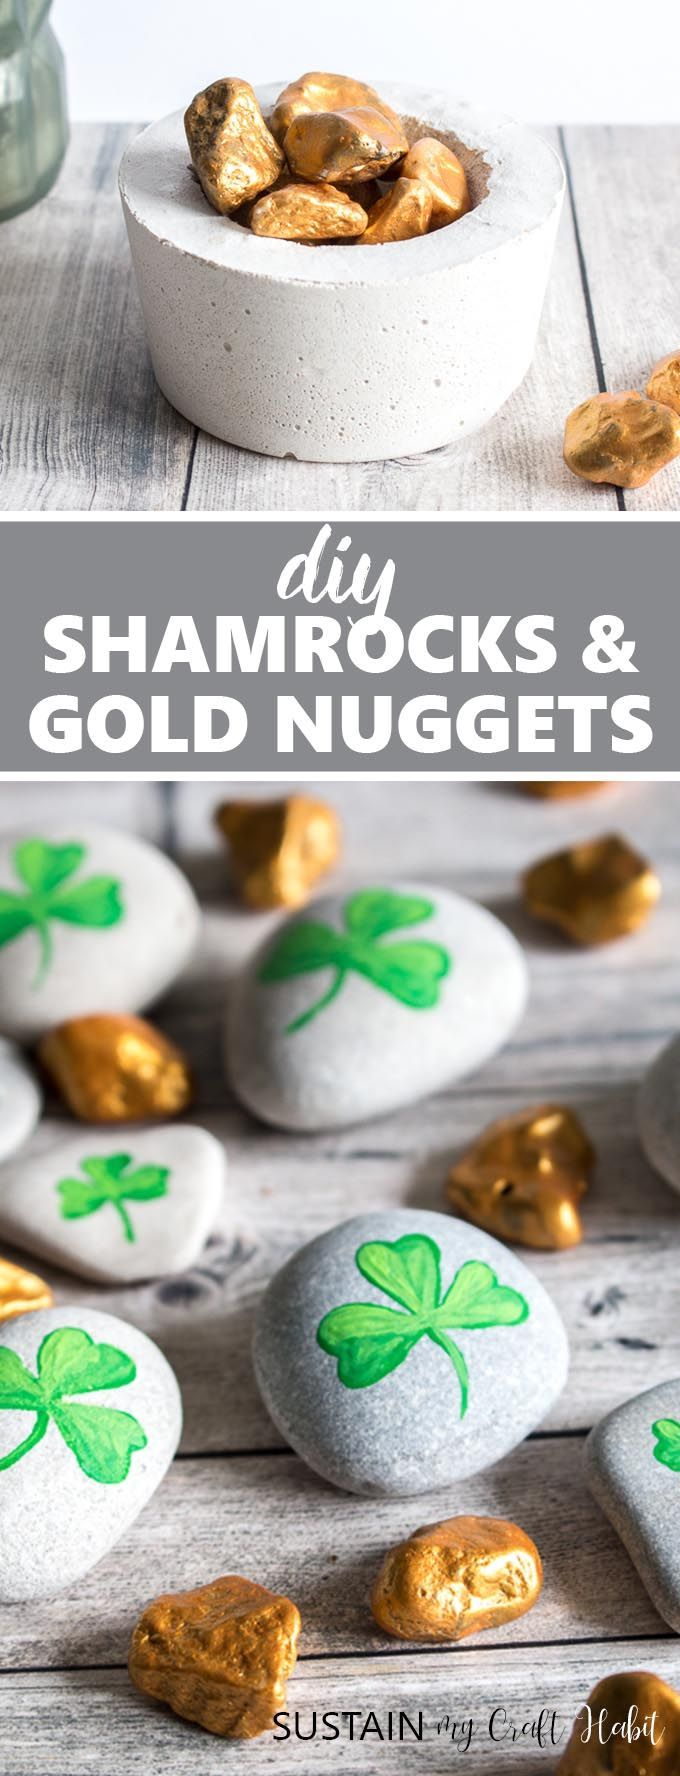 Get lucky with these simple, fun and festive shamrock and gold nugget painted ro...